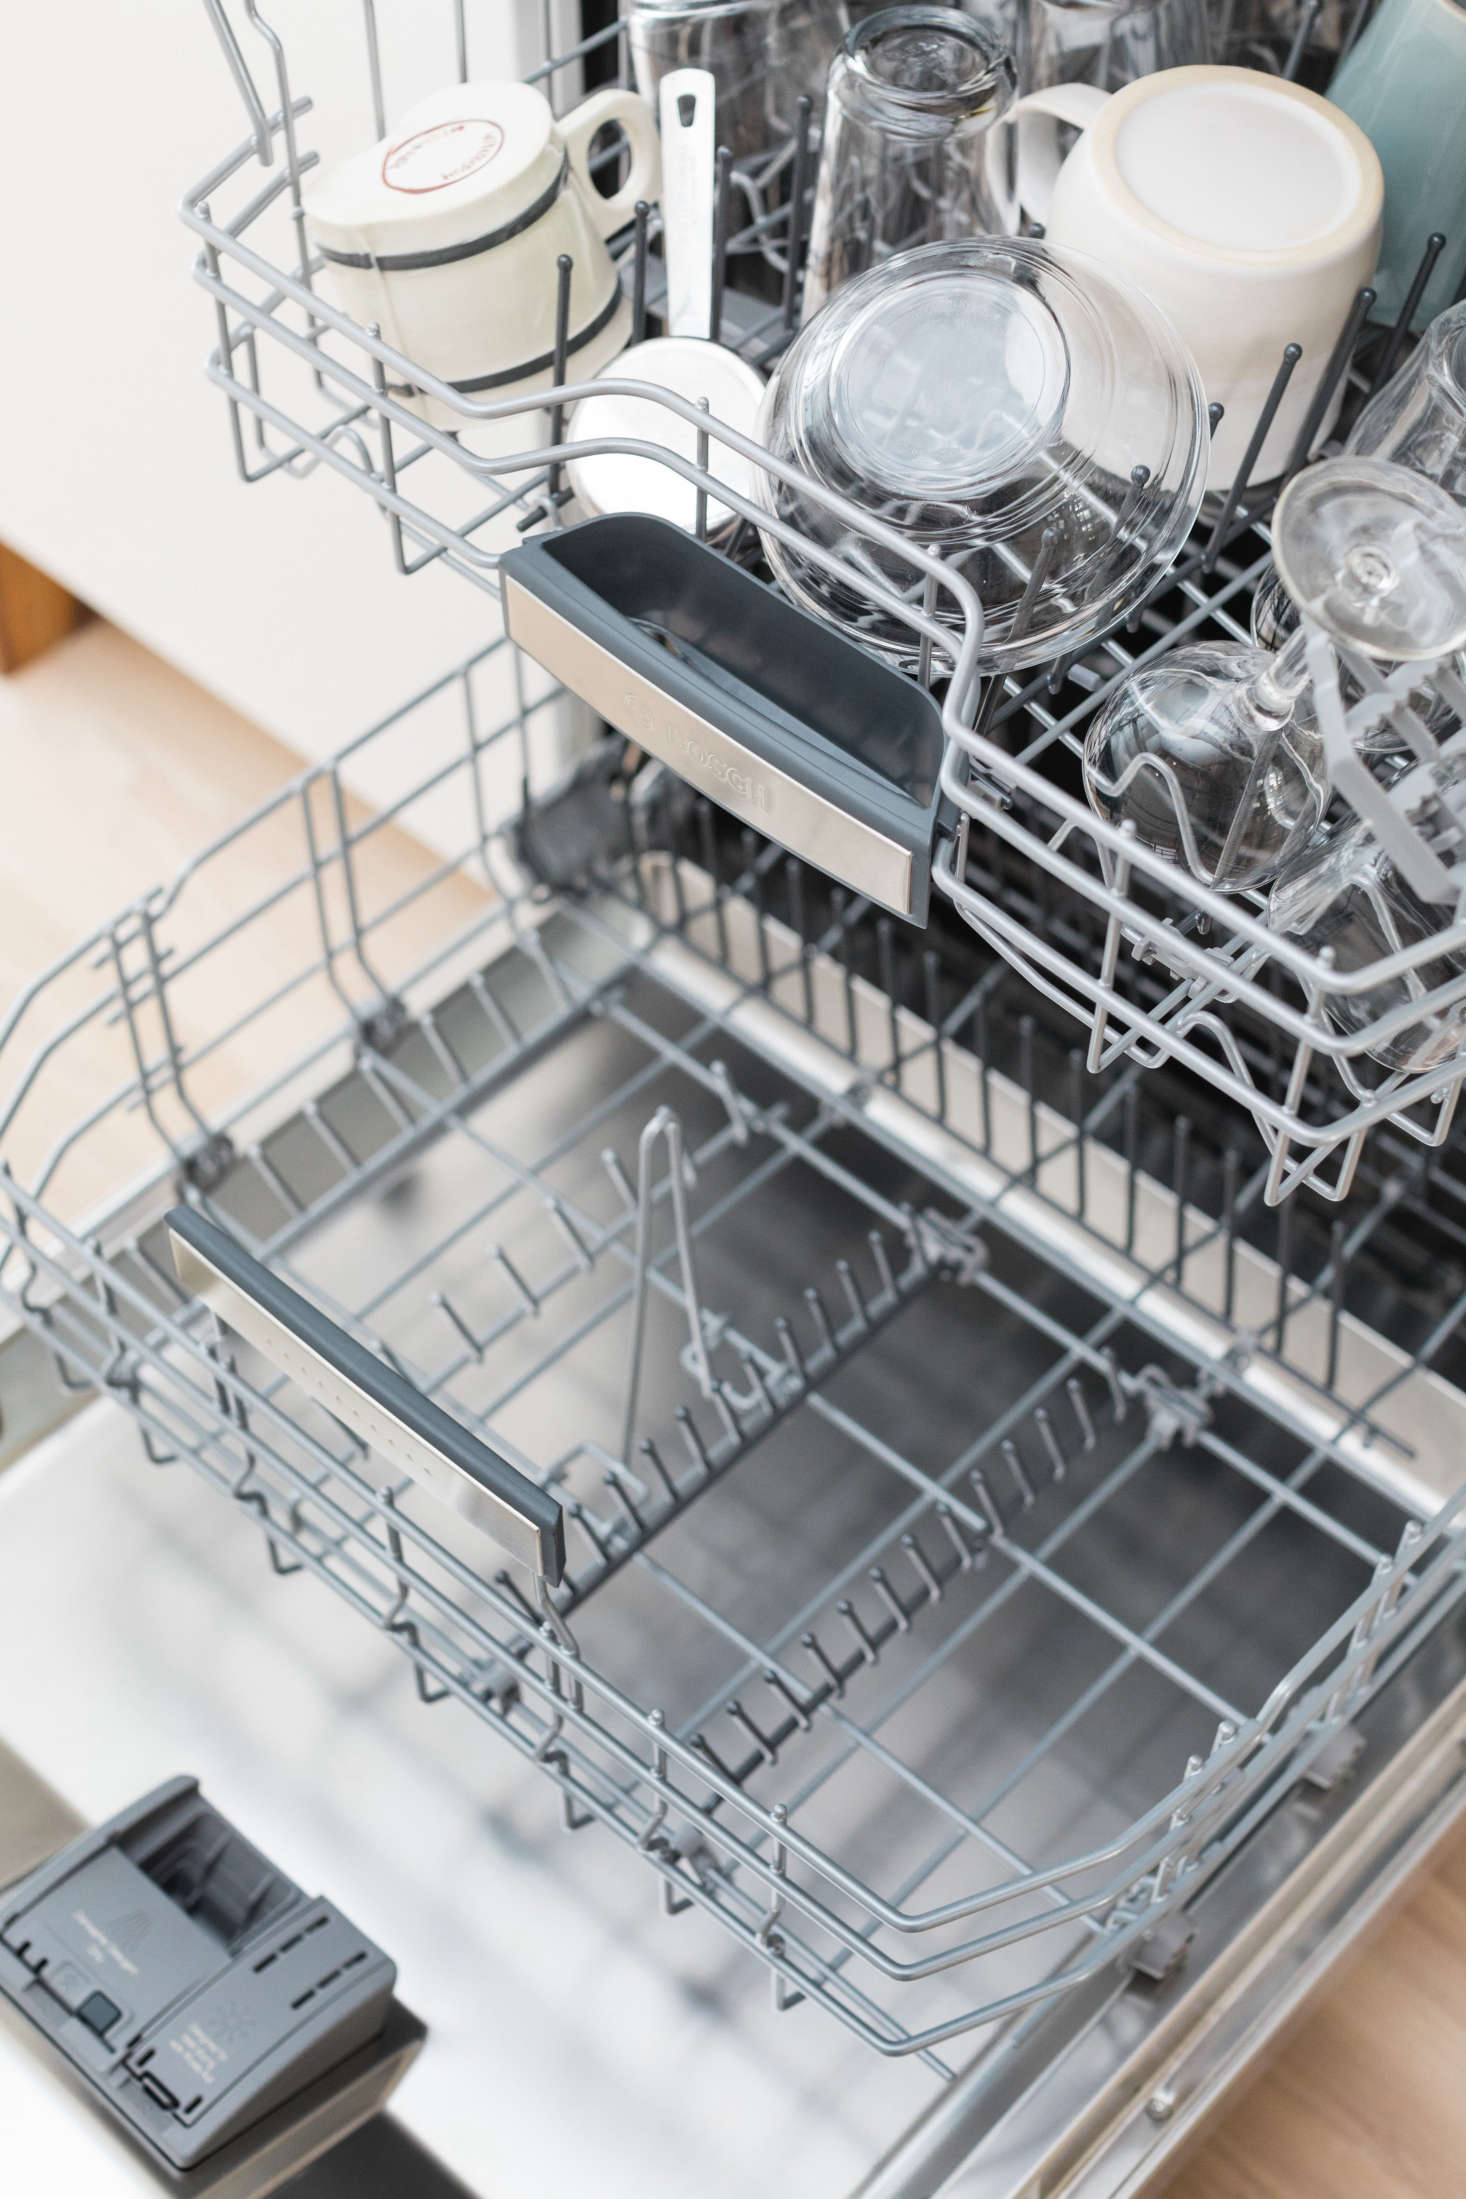 How to load the dishes in the dishwasher: how to use the dishwasher 51